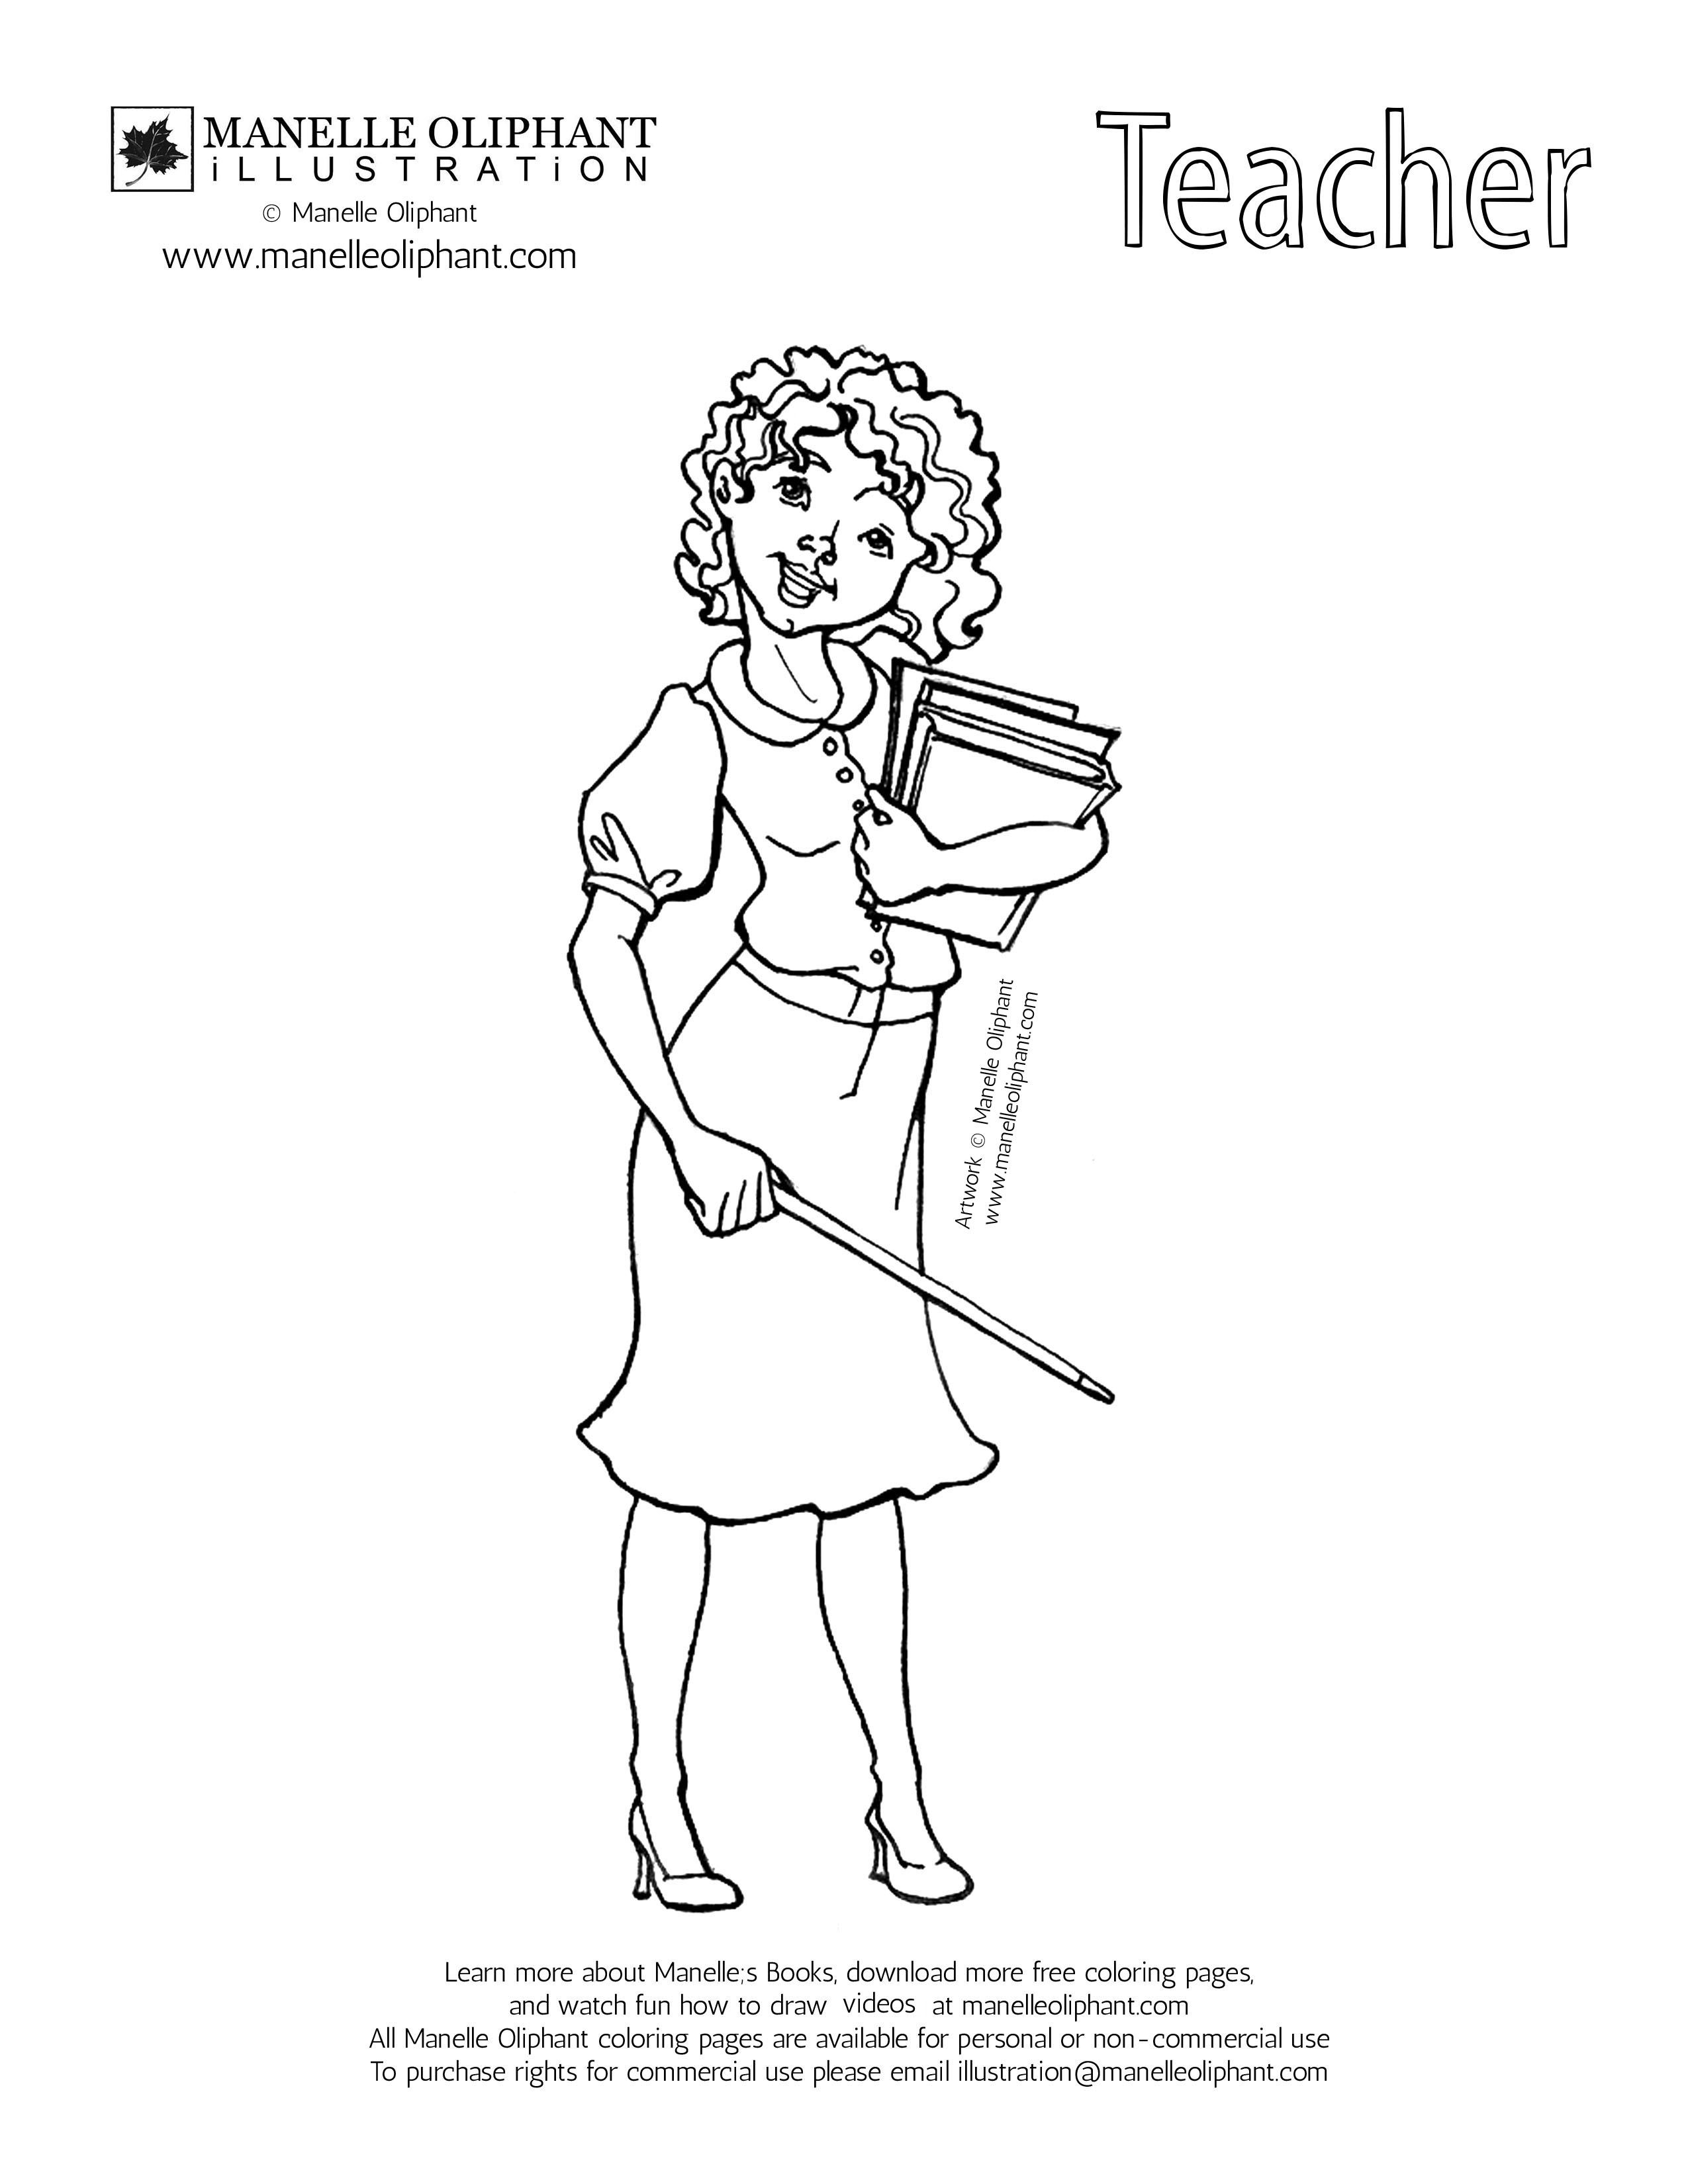 ▷ Teacher: Coloring Pages & Books - 100% FREE and printable!